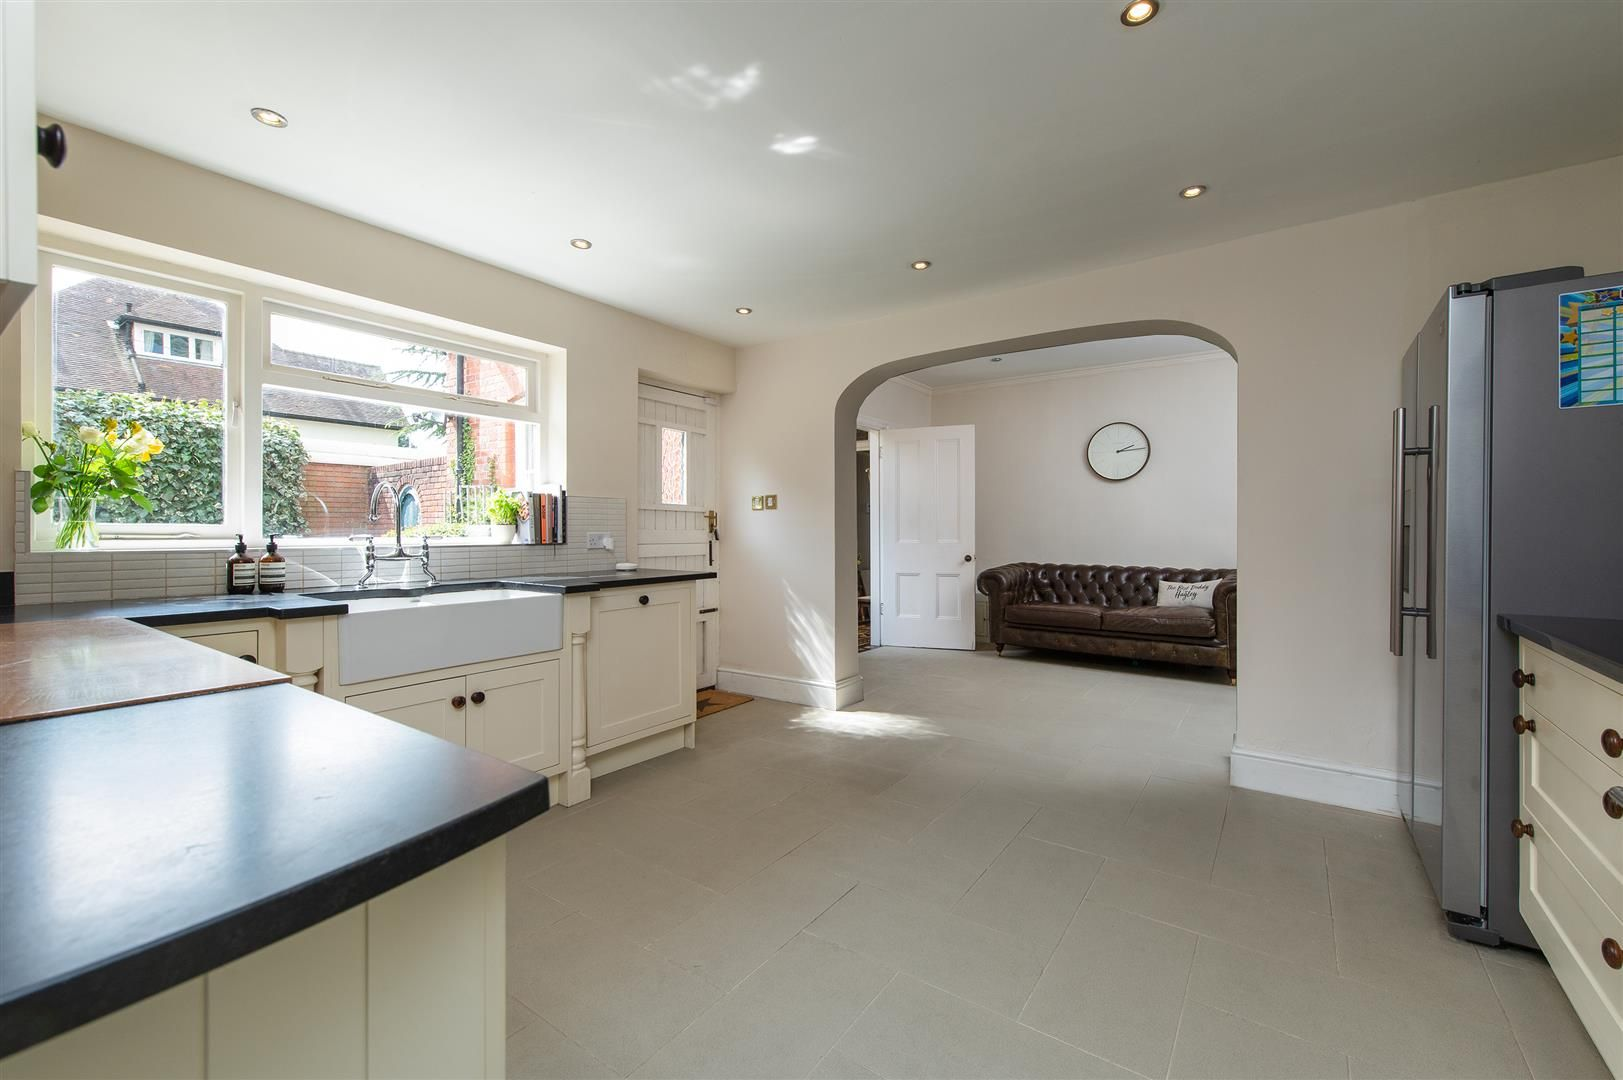 4 bed detached for sale in Hagley  - Property Image 18